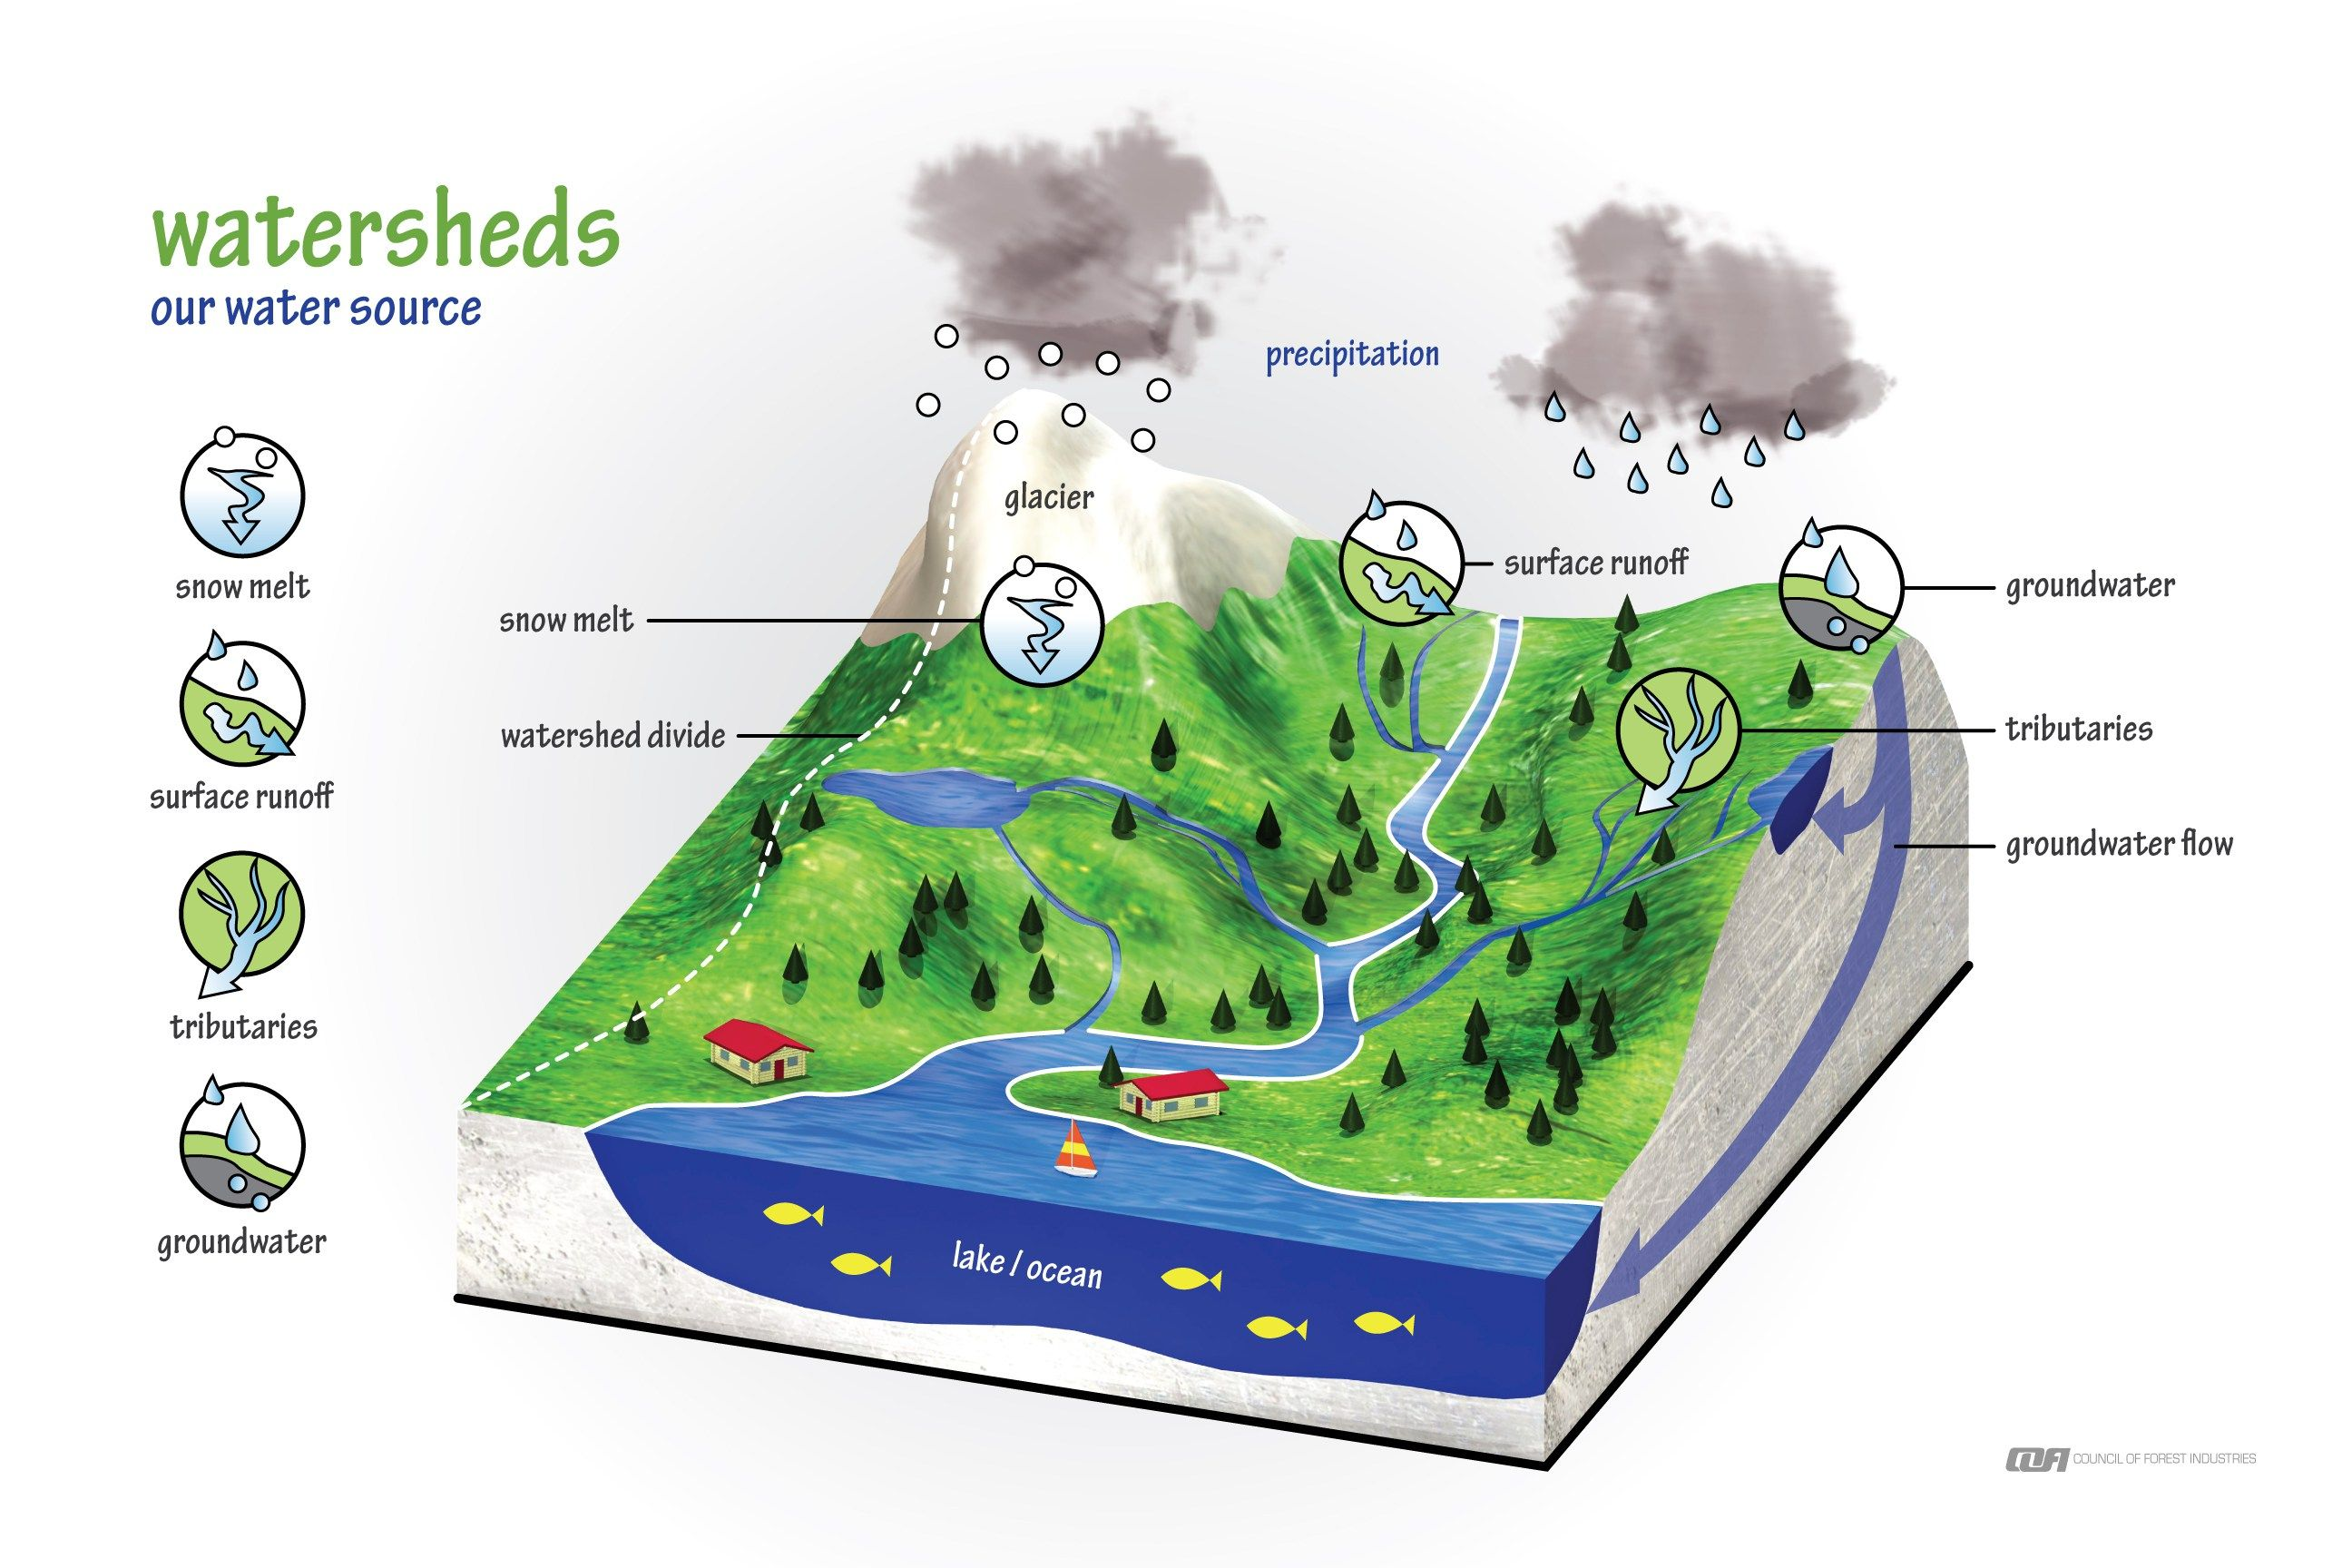 Pin By Chelsea Duty On Environmental Science